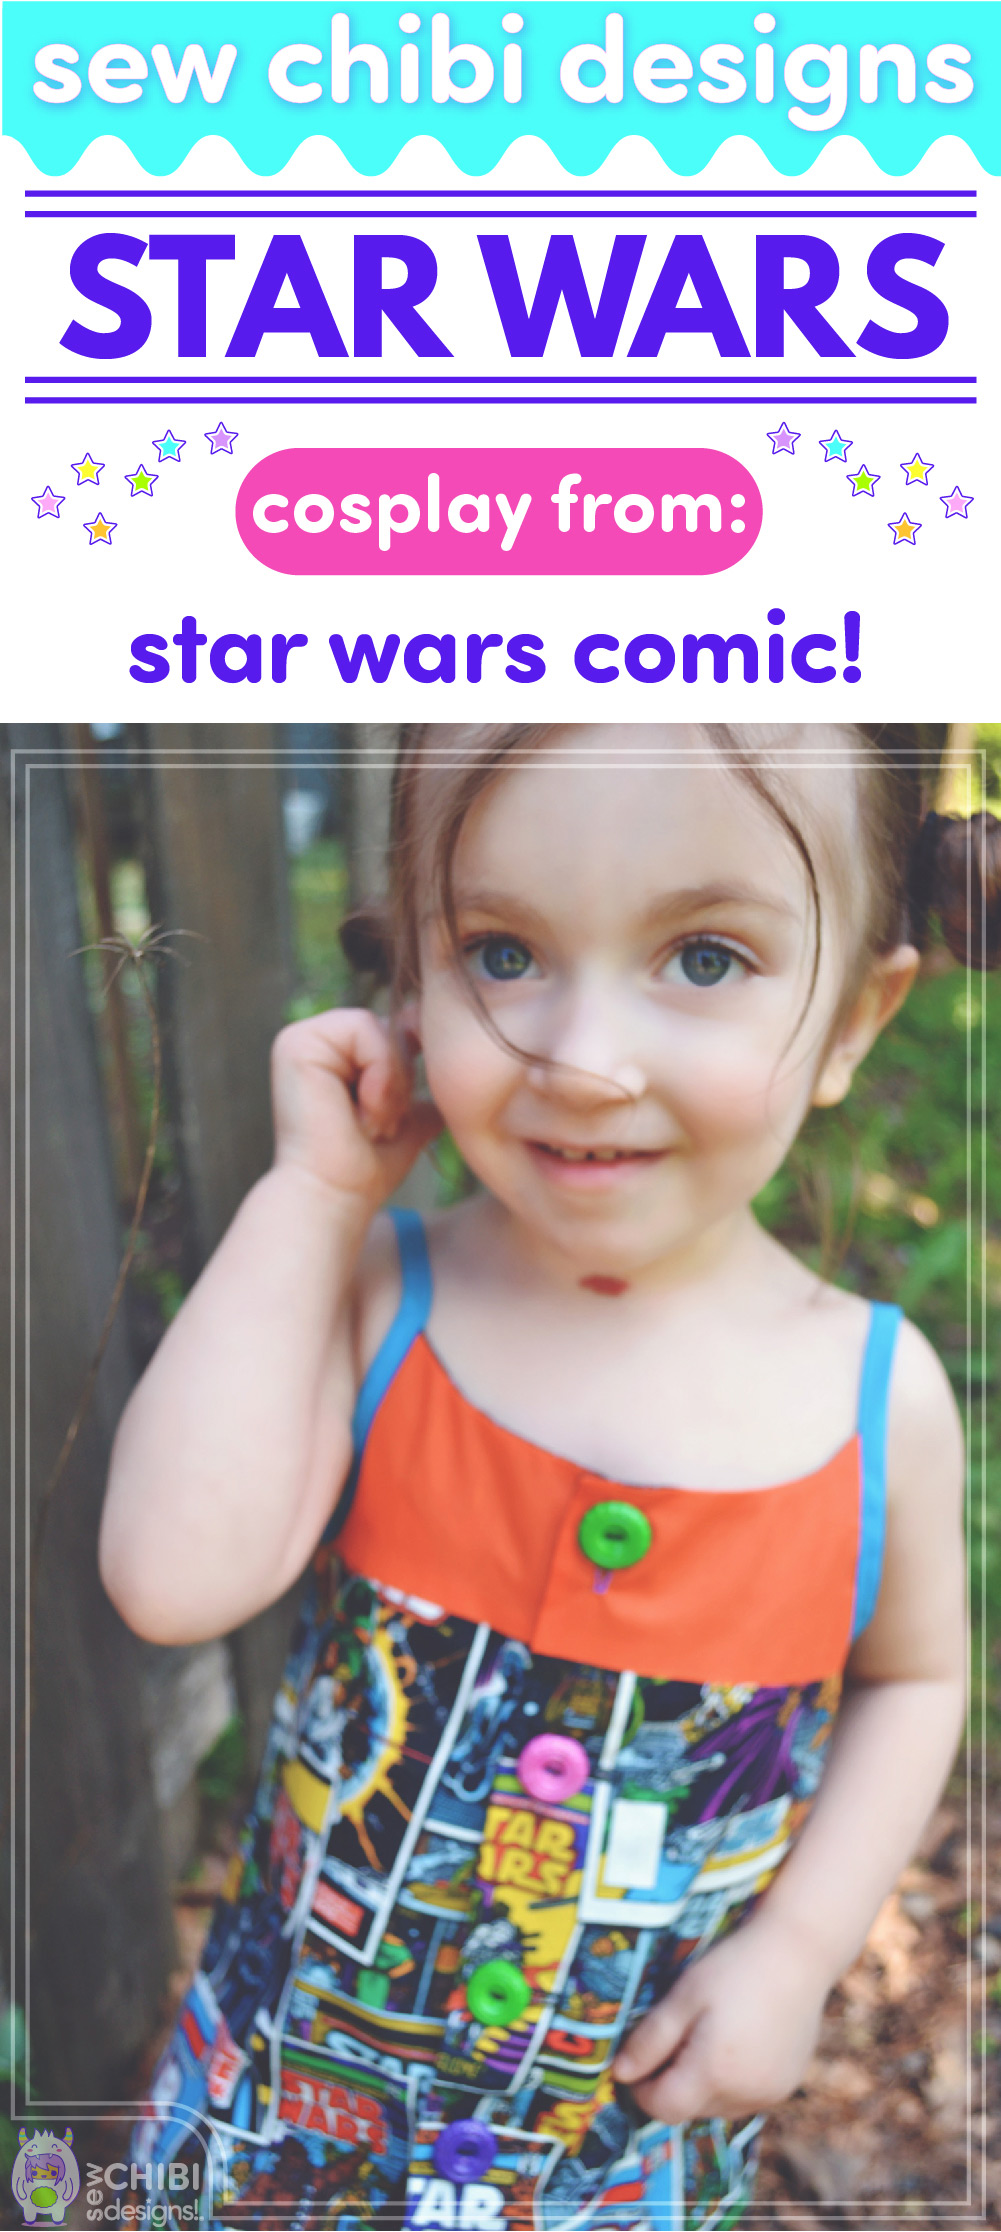 chibi cosplay from Star Wars sewn by Sew Chibi Designs for Sew Geeky